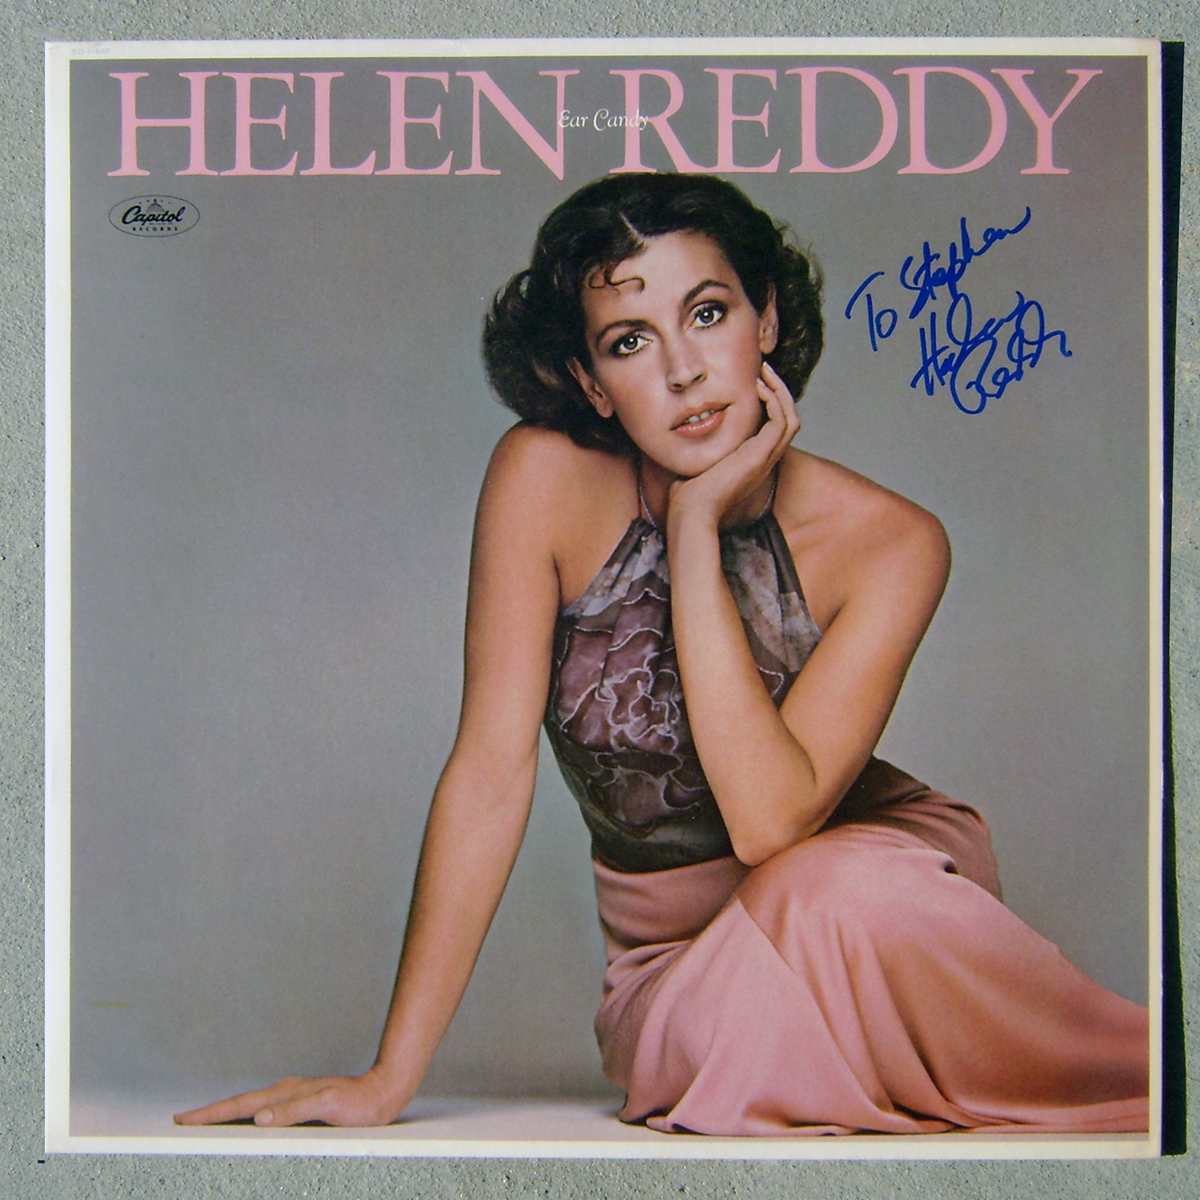 LP - Helen Reddy - Ear Candy